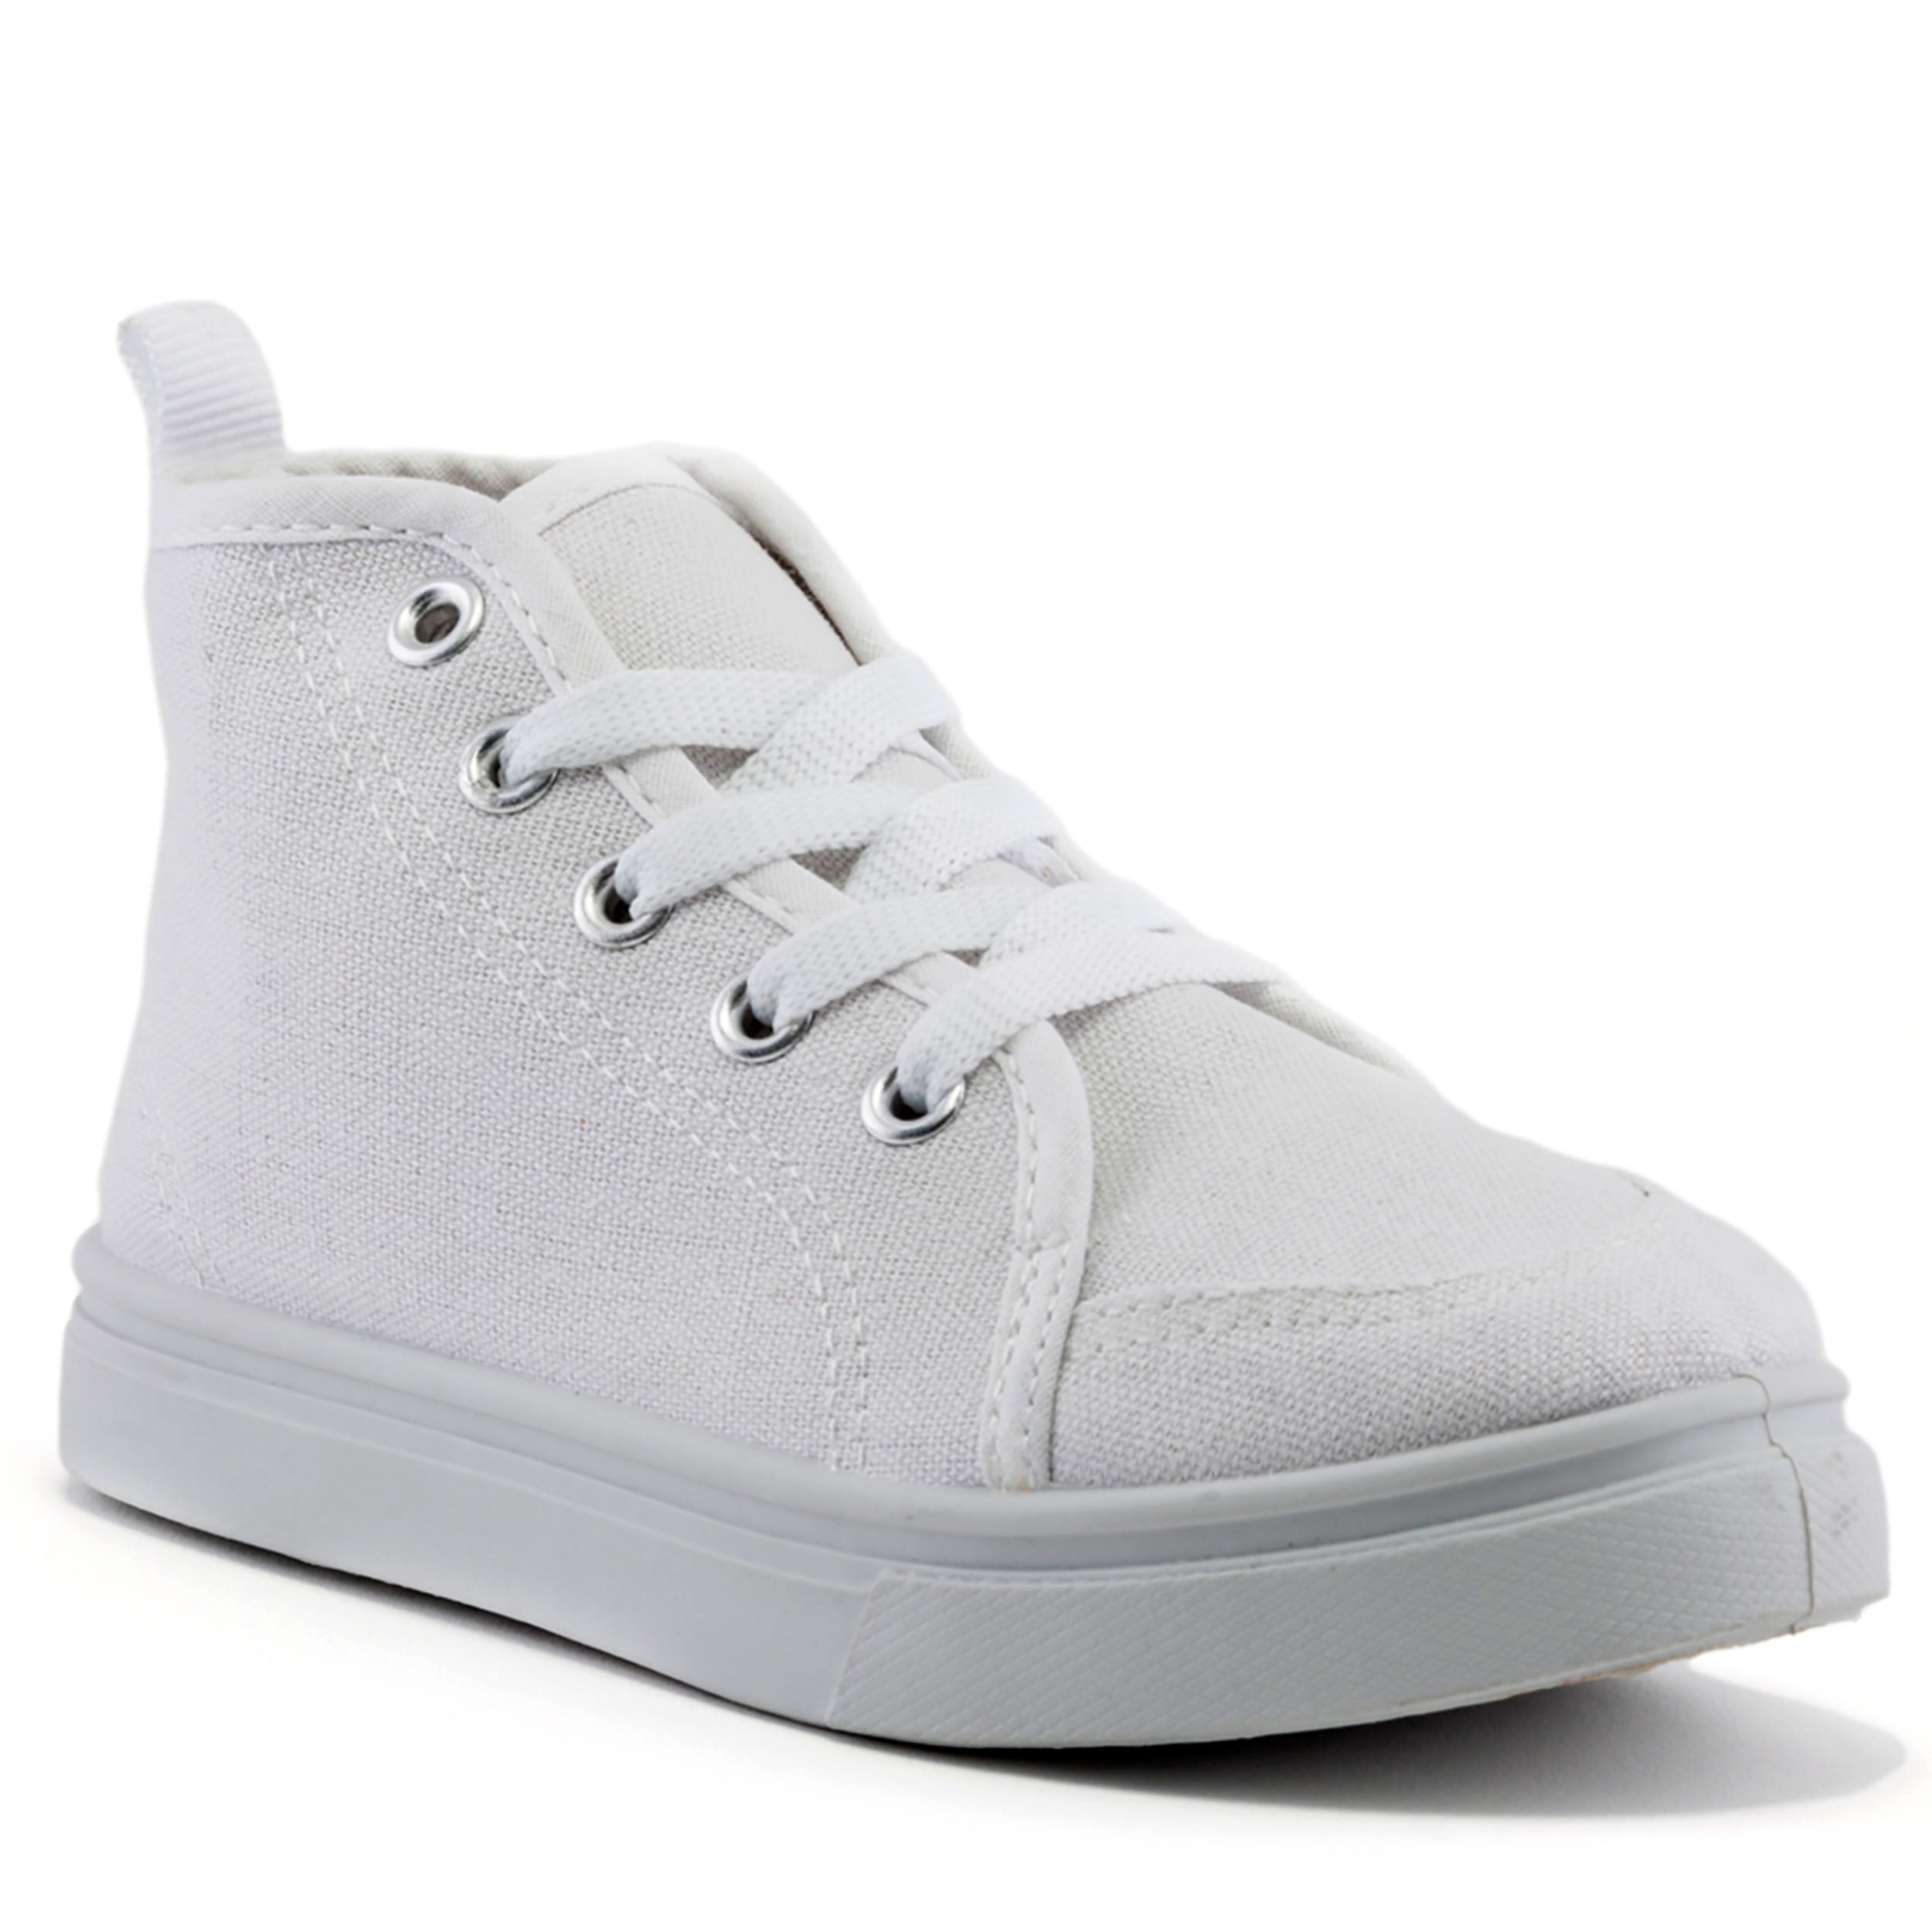 Zoogs Girls and Boys High Top Sneakers